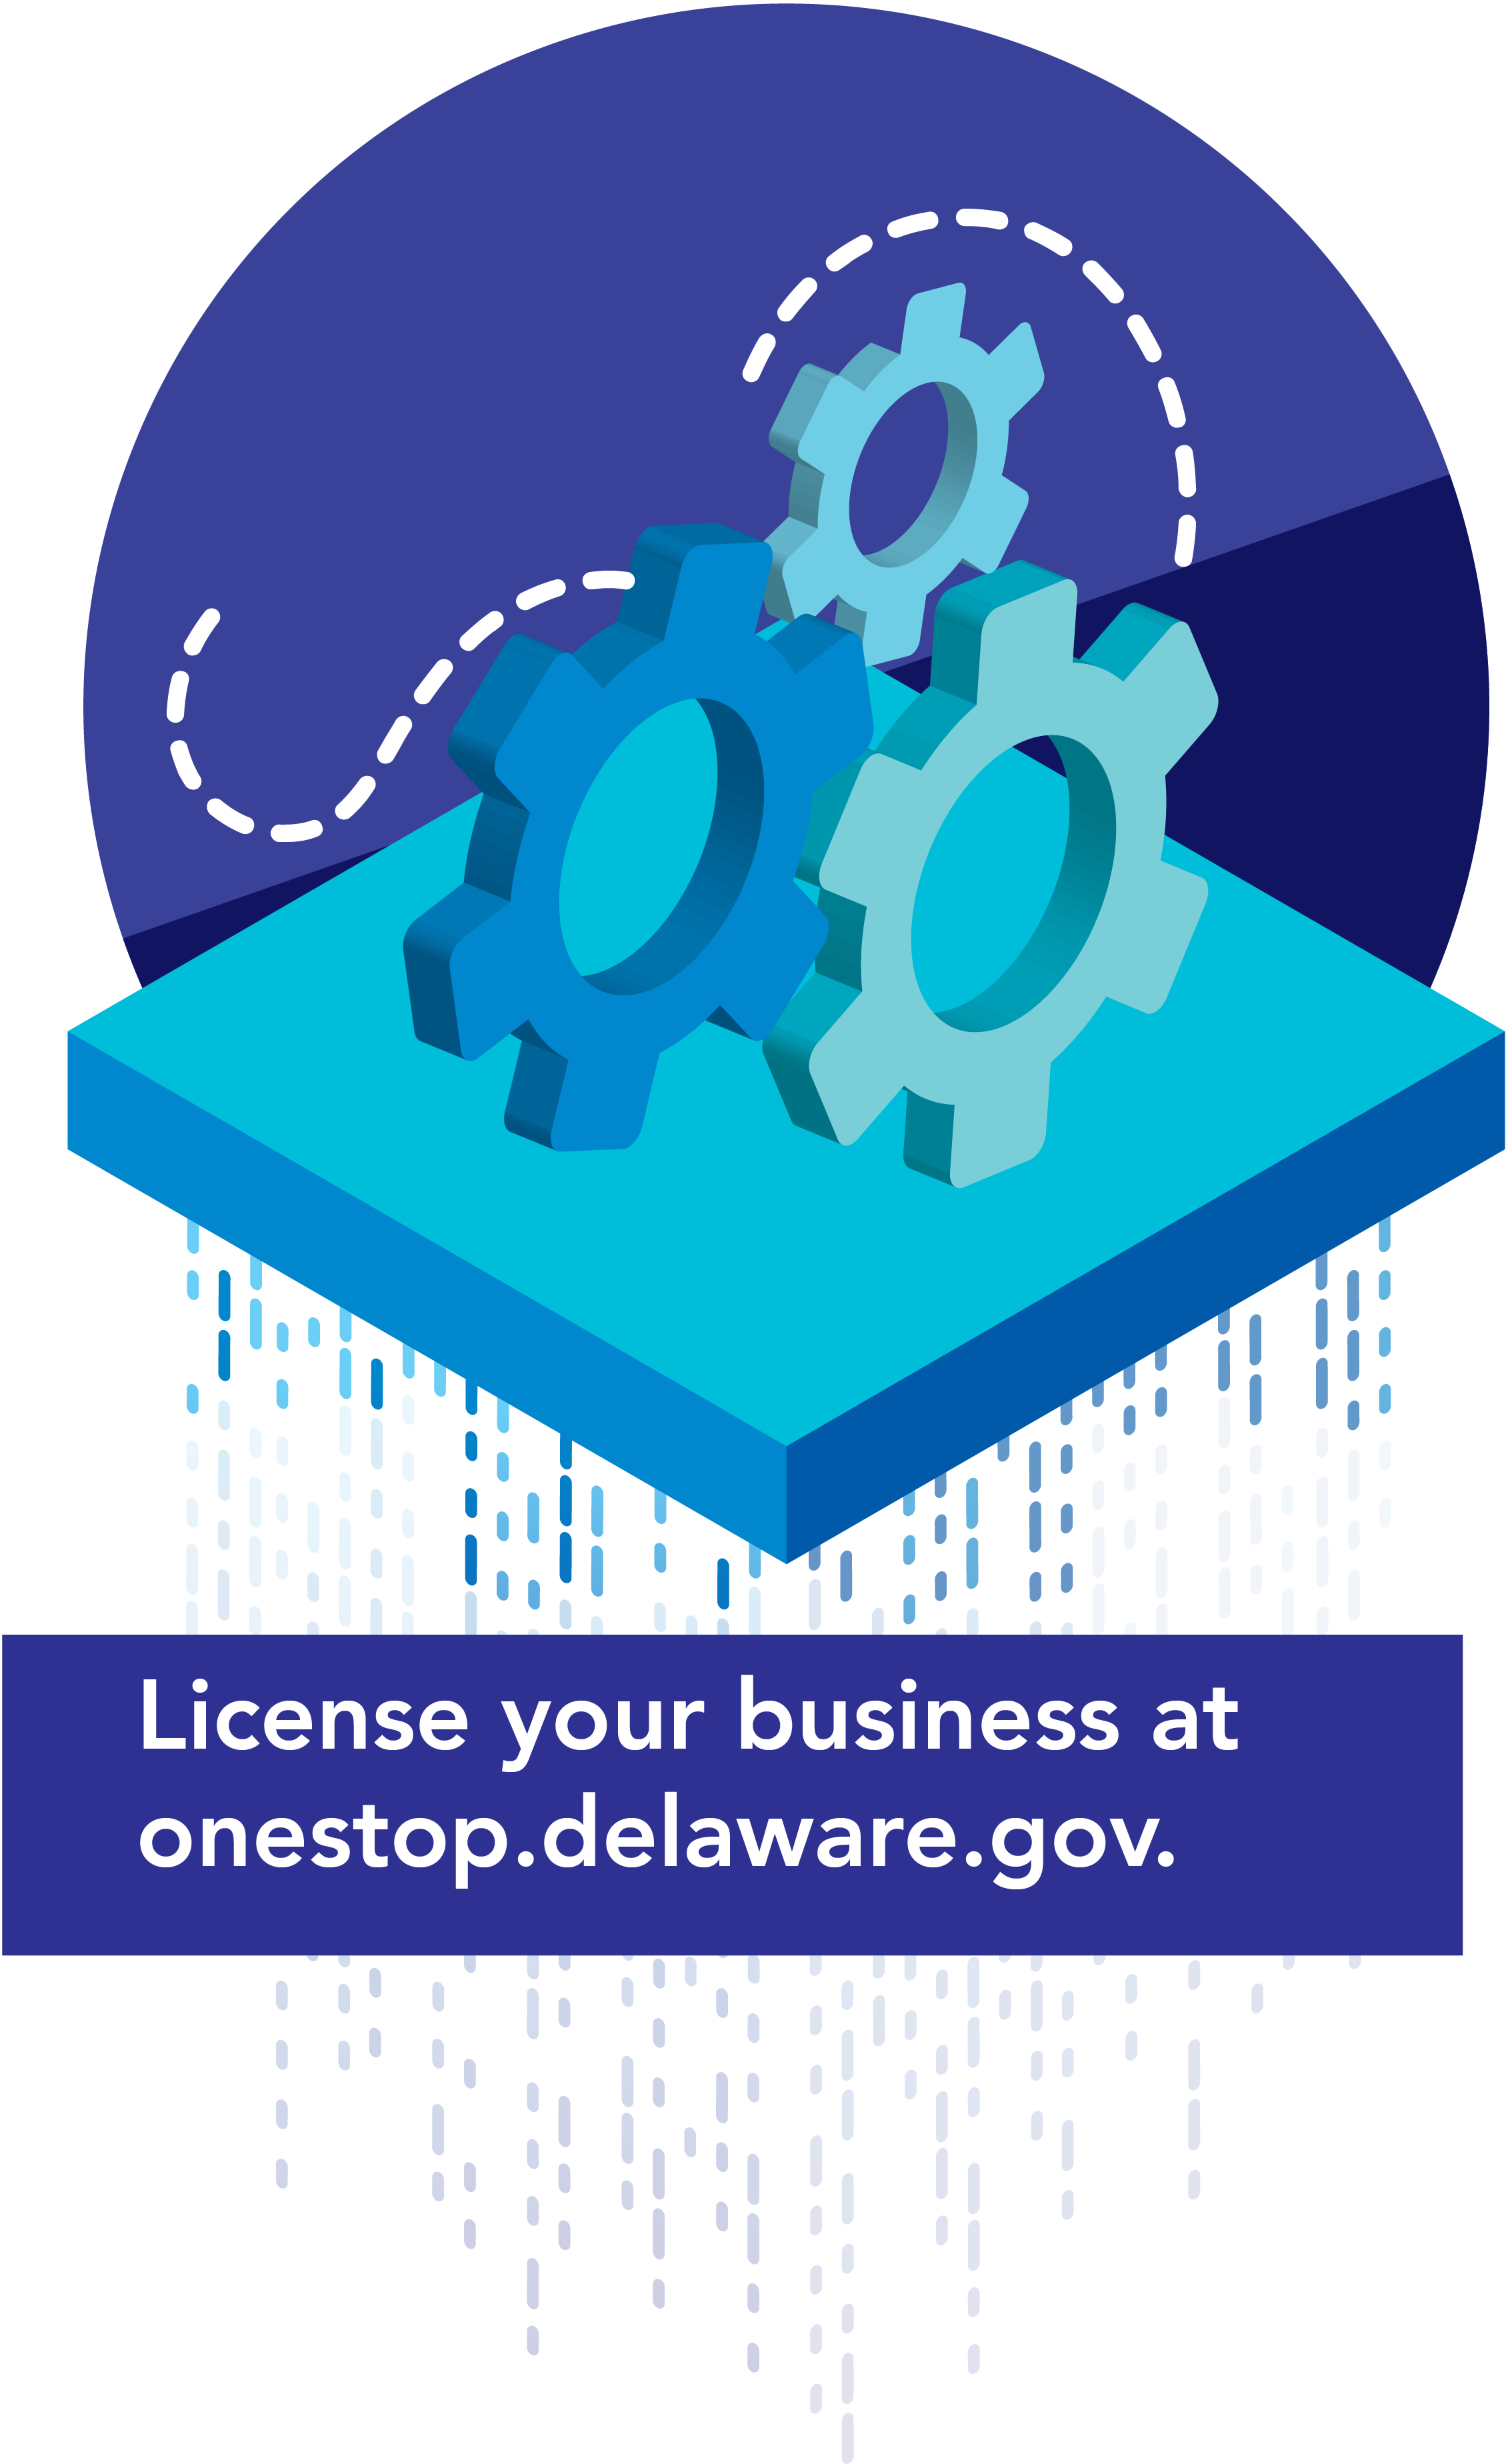 A graphic with cogs representing that yo can license your business at onestep.de.gov